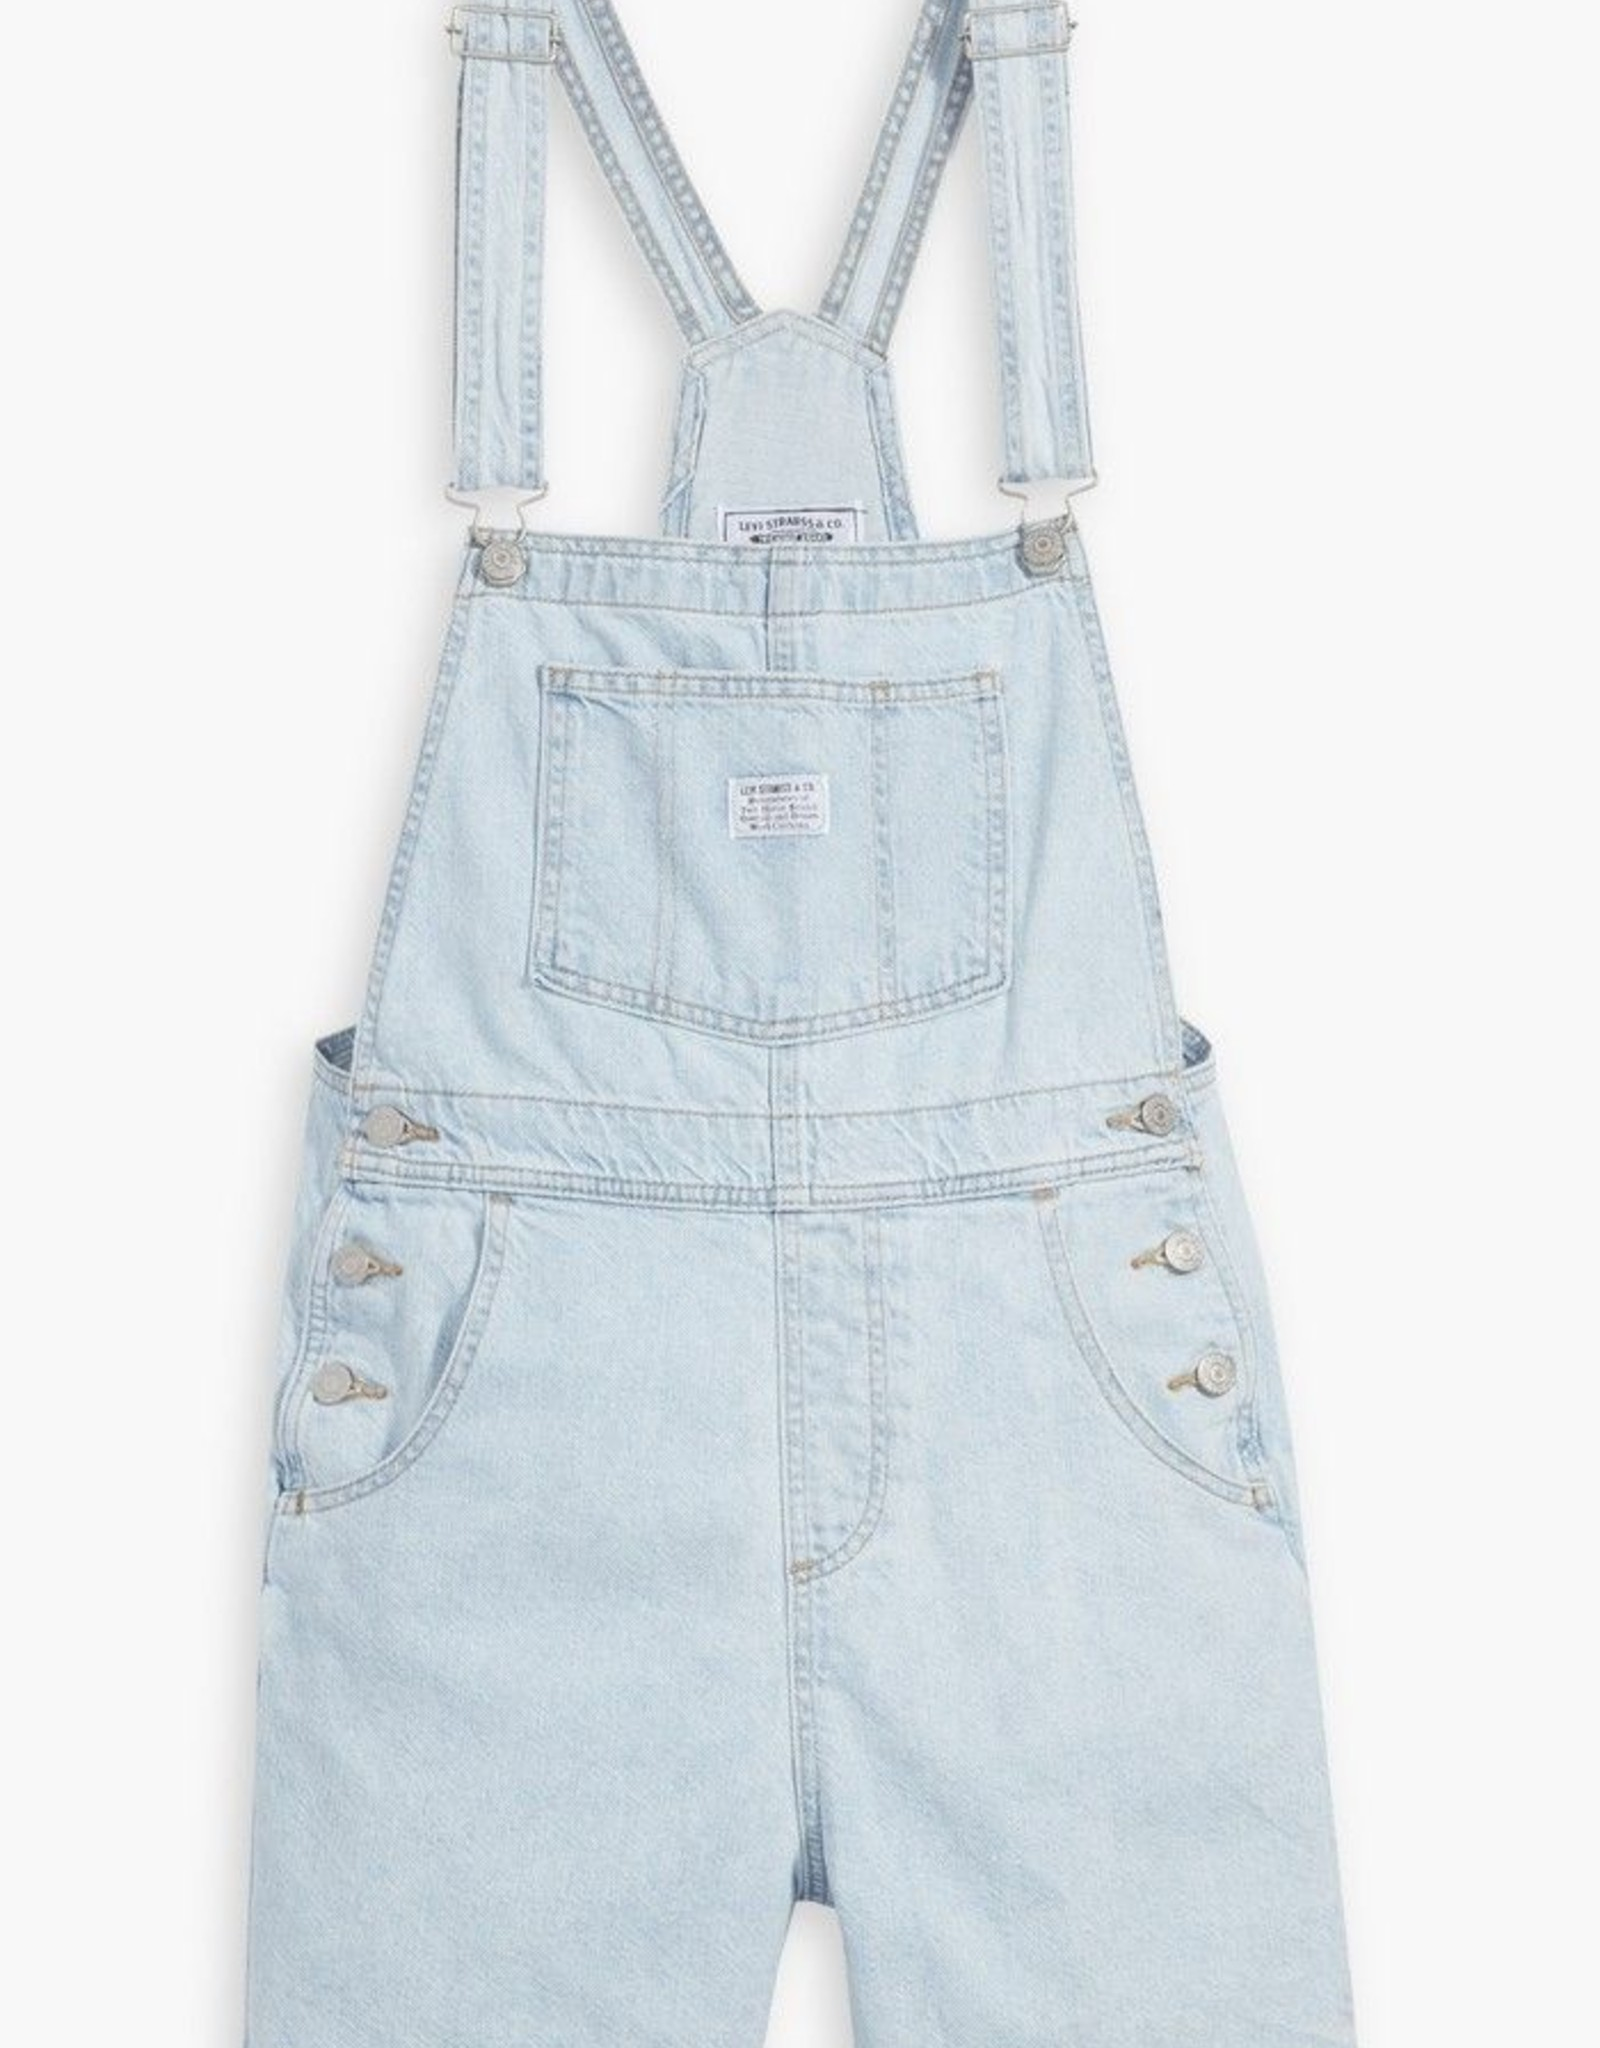 Levi's Vintage Shortall Soak up the Sun